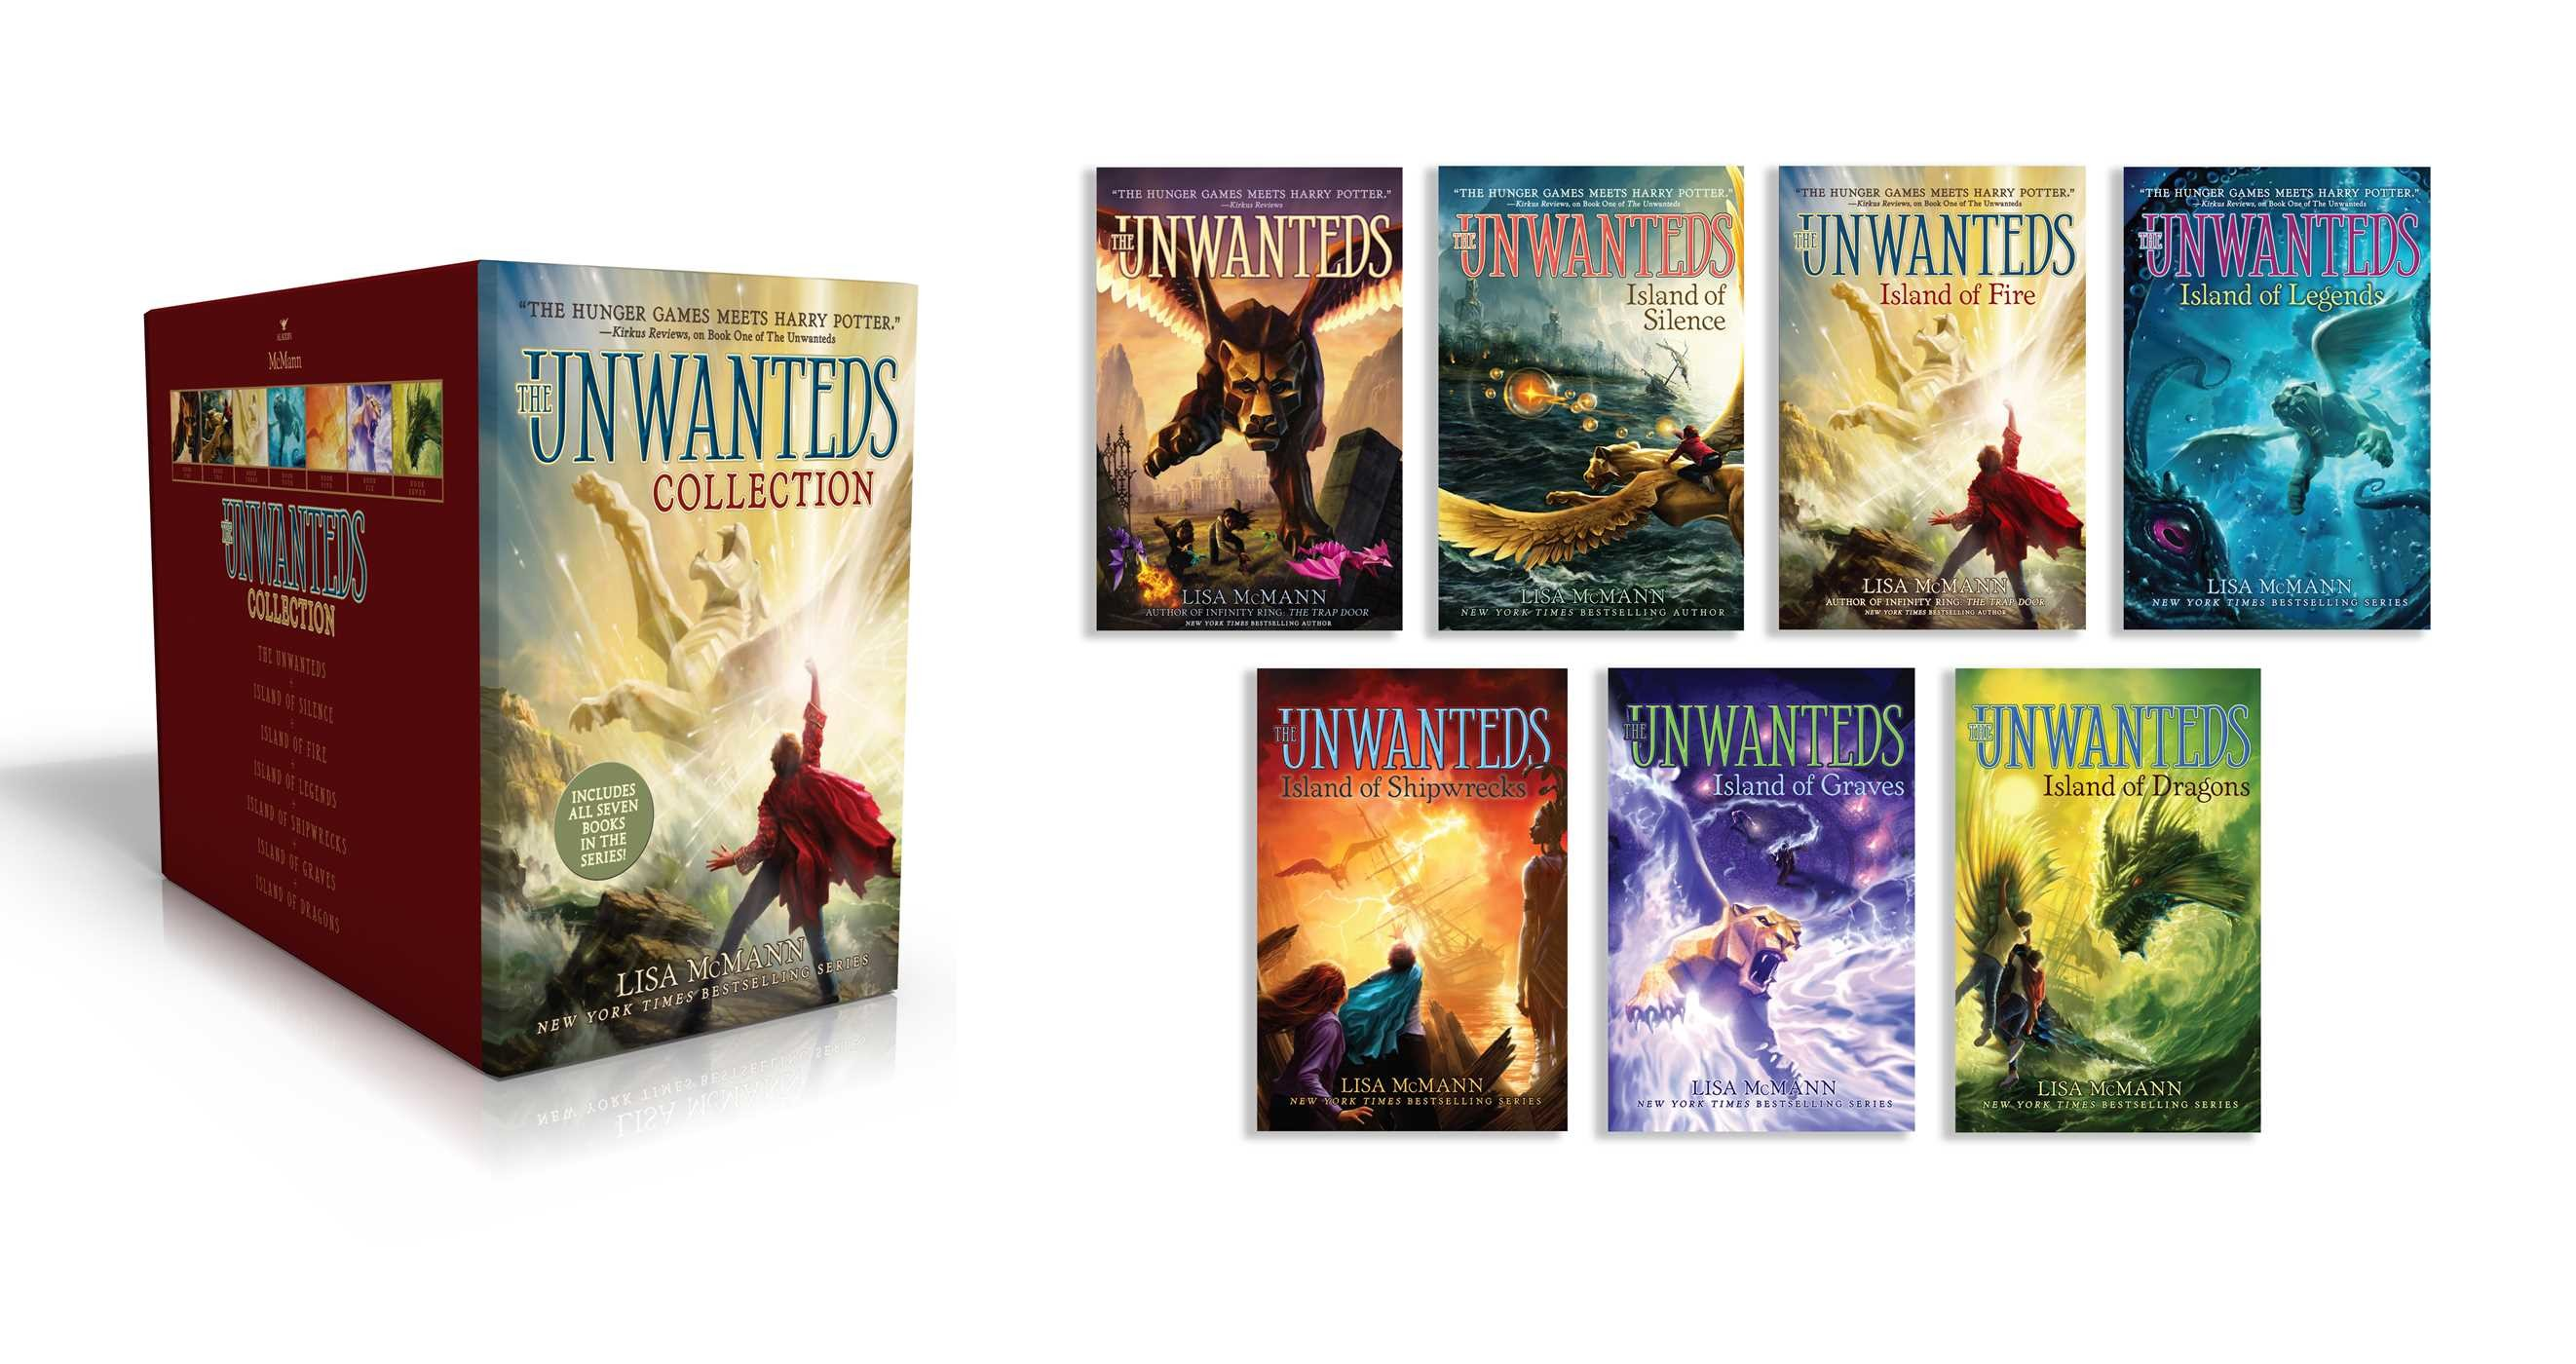 The unwanteds collection 9781481496636.in01